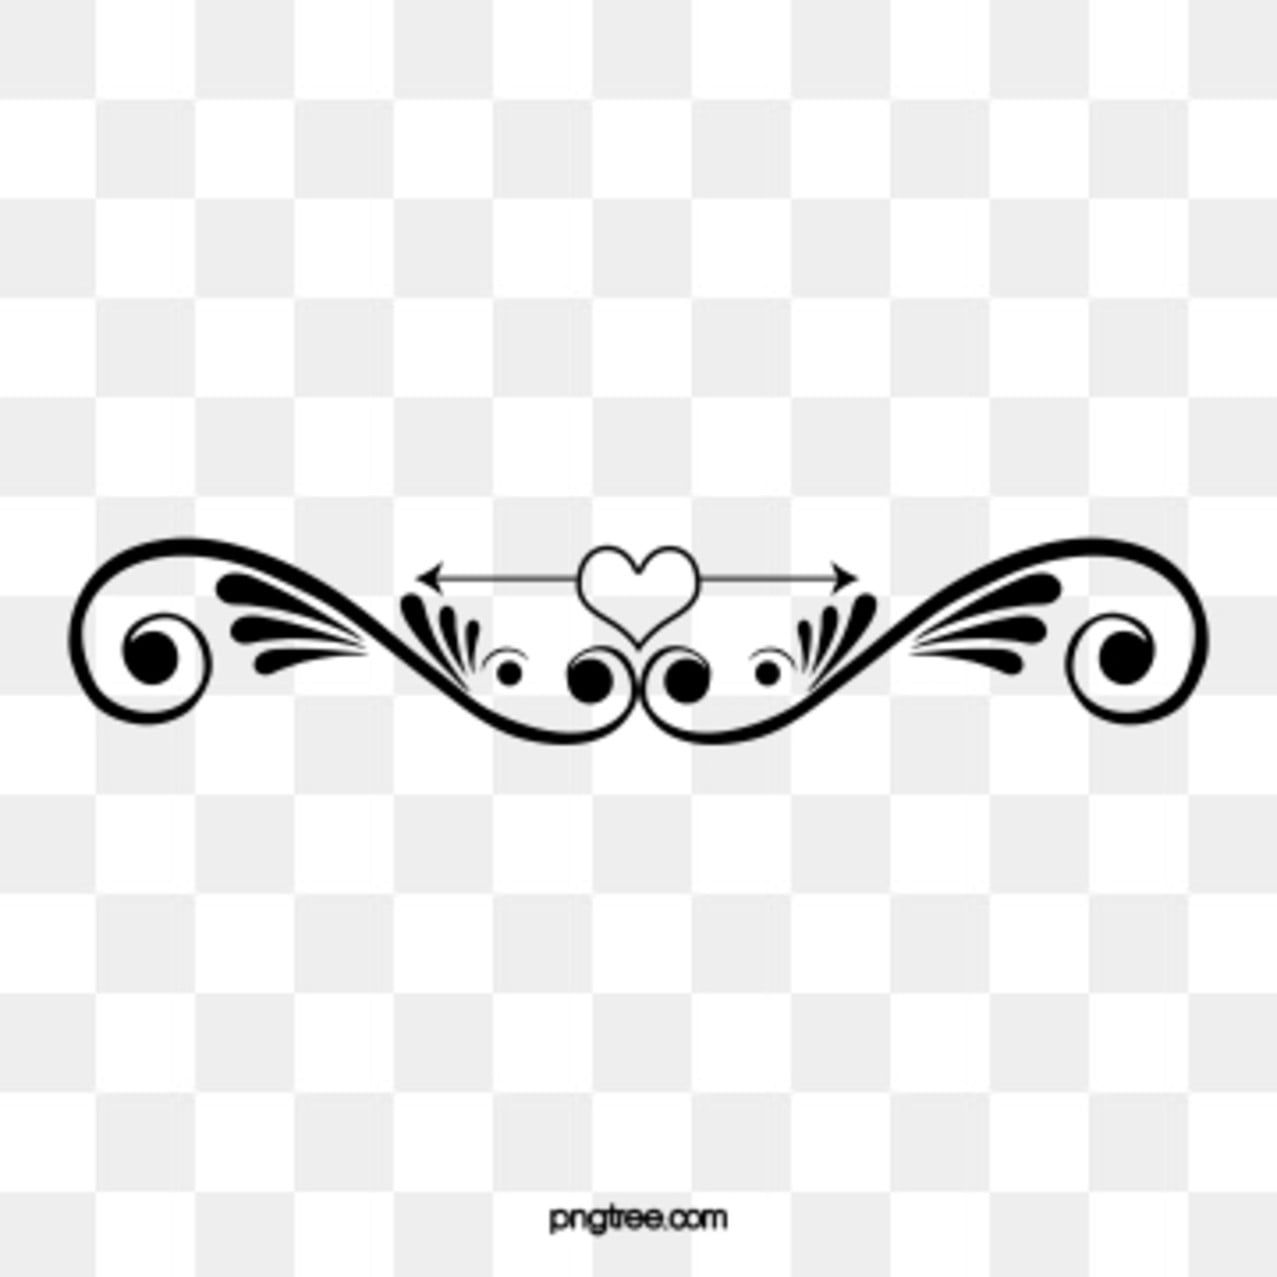 European Dividing Line Simple Lines Line Design Png Transparent Clipart Image And Psd File For Free Download Decorative Lines Clip Art Emoji Drawings